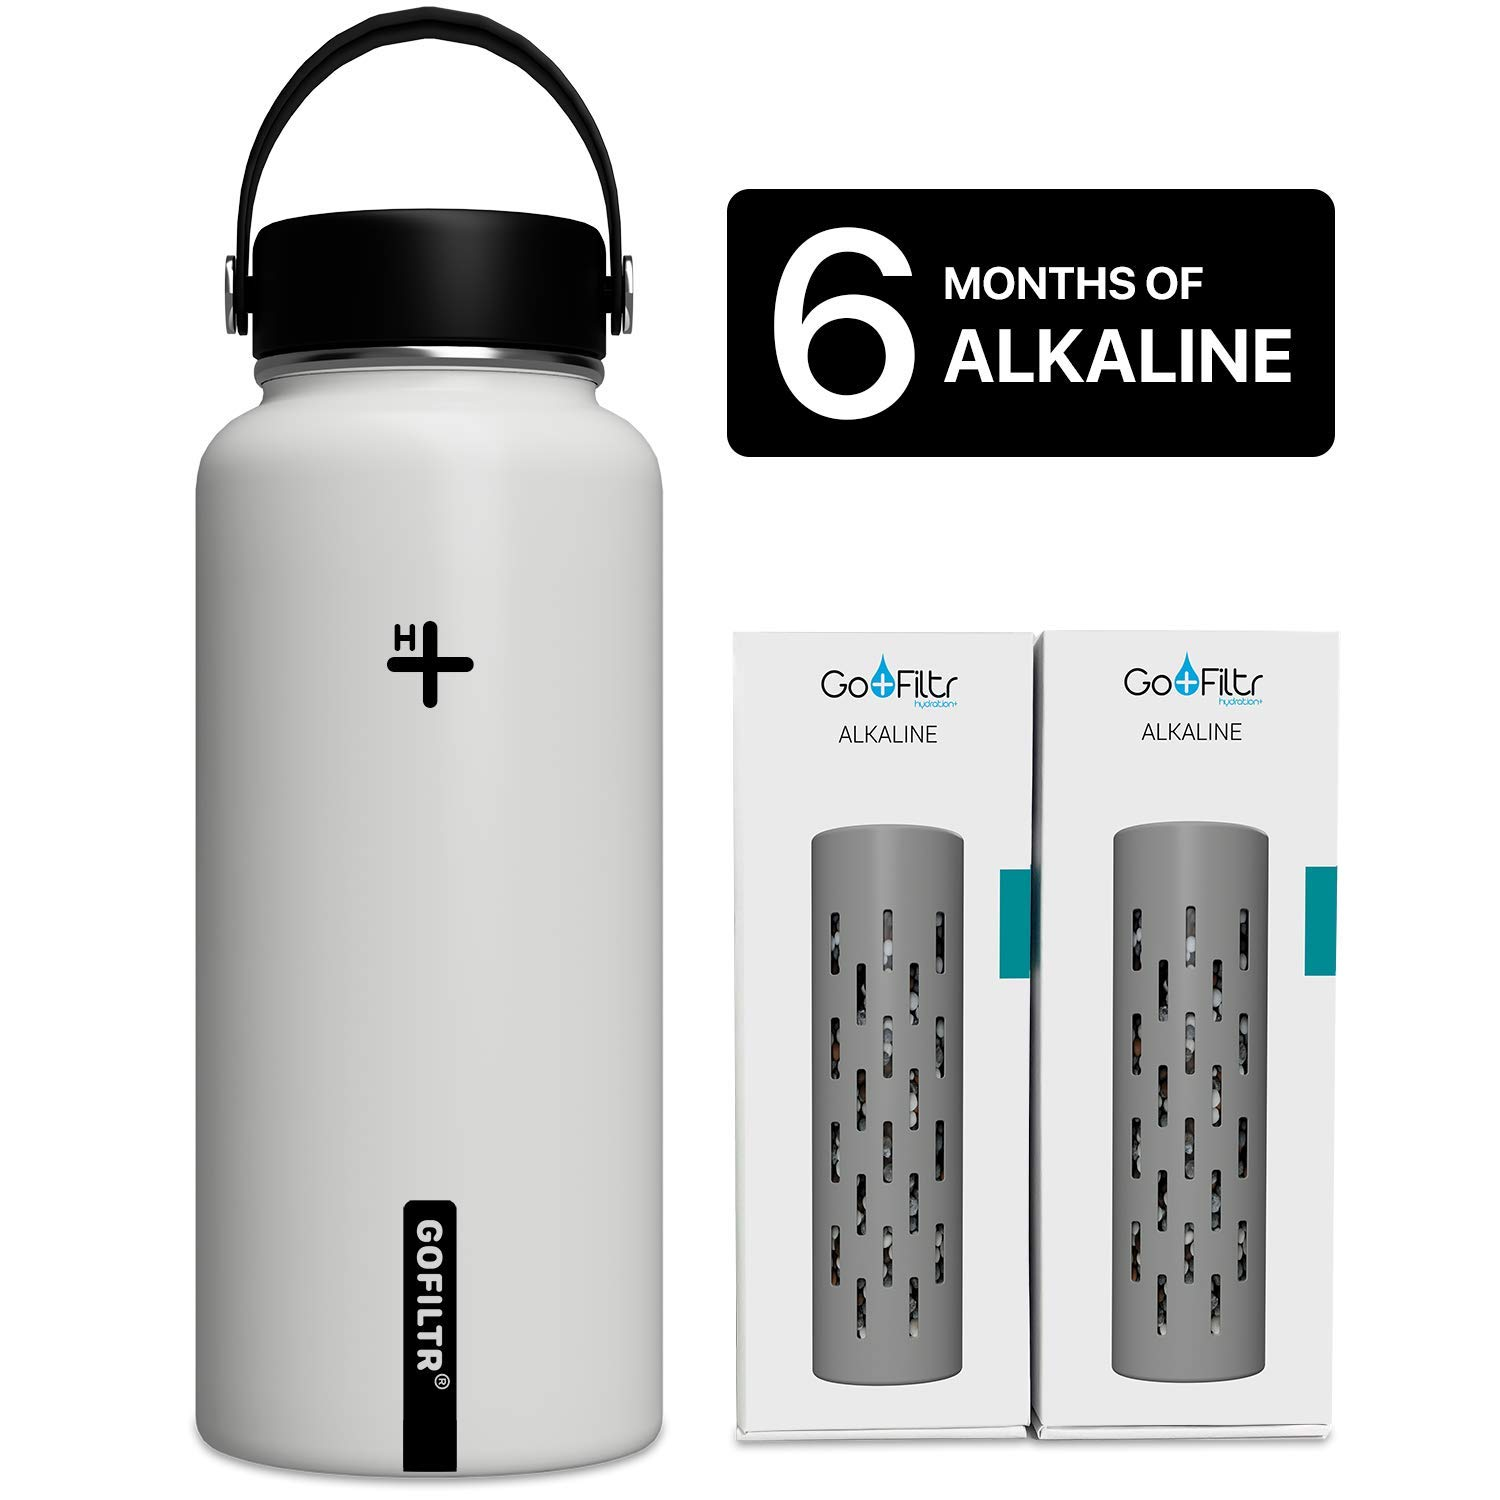 GOFILTR Alkaline Water Bottle Hydration Kit | 32 oz (950ml) Vacuum Insulated Stainless Steel Water Bottle | Wide Mouth + Two Alkaline Ionized Mineral Infusers